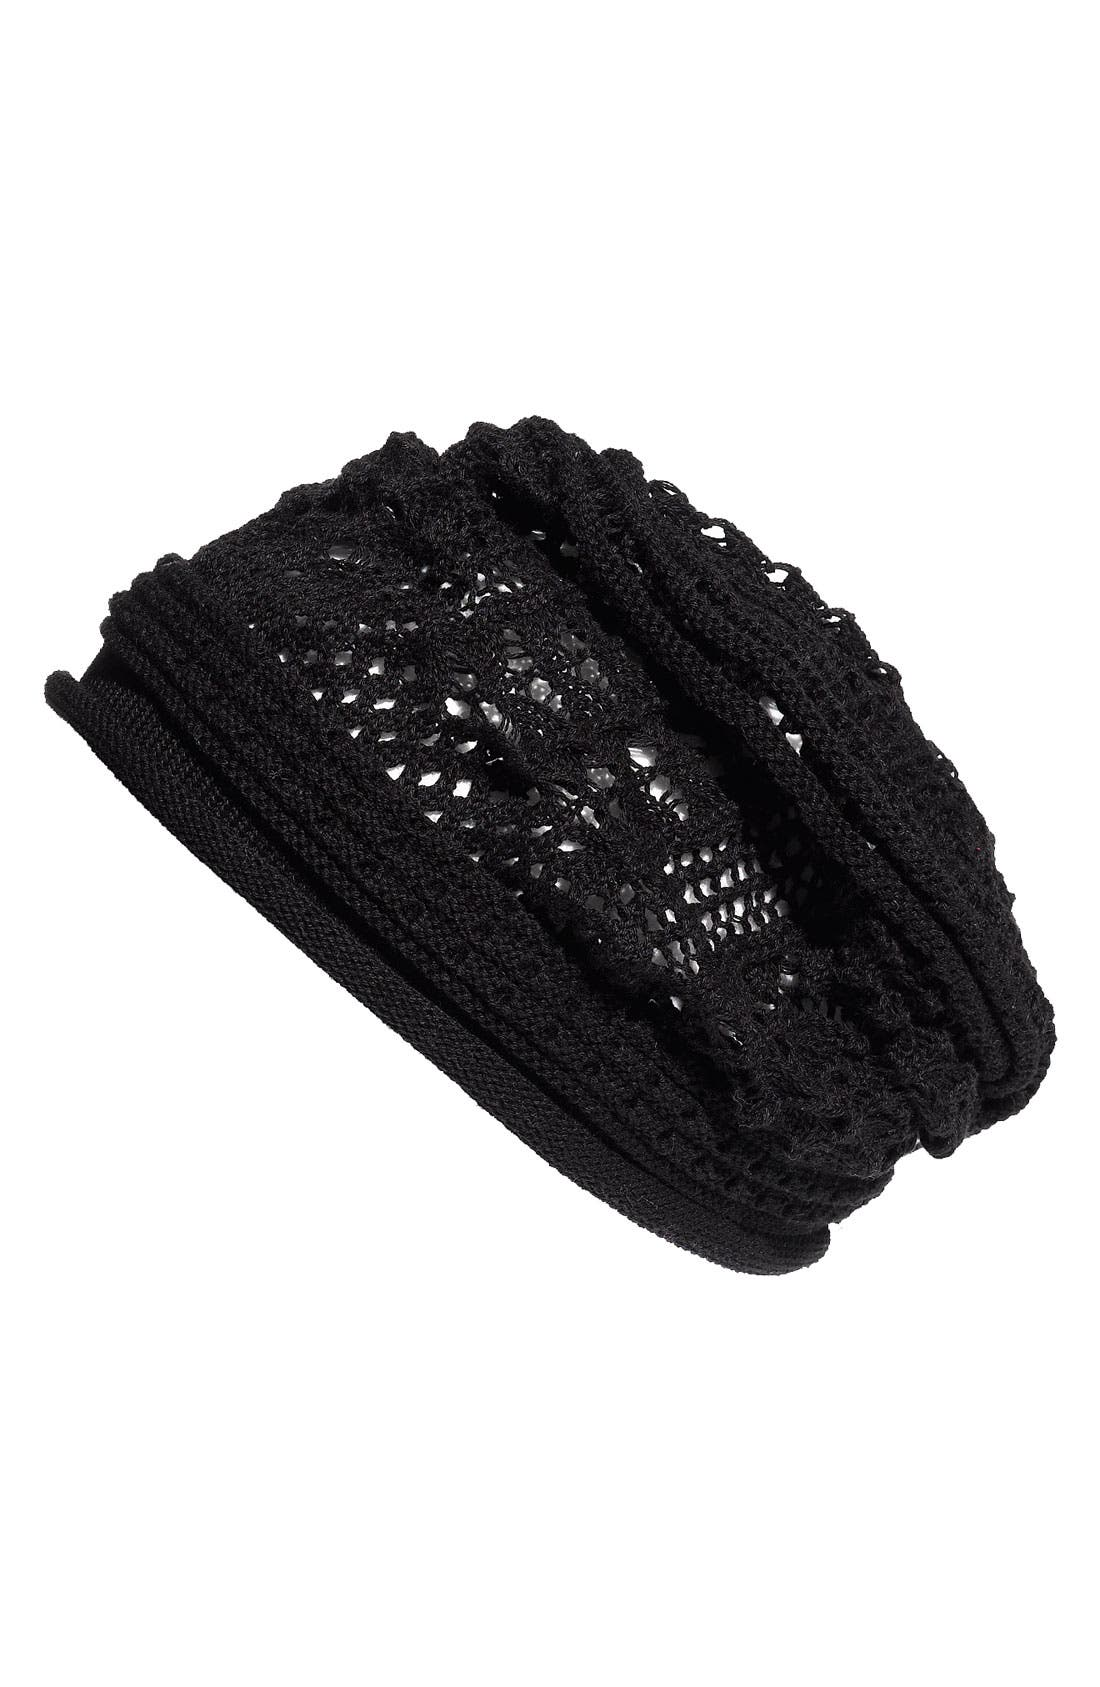 Alternate Image 1 Selected - Cara Accessories Open Knit Beanie